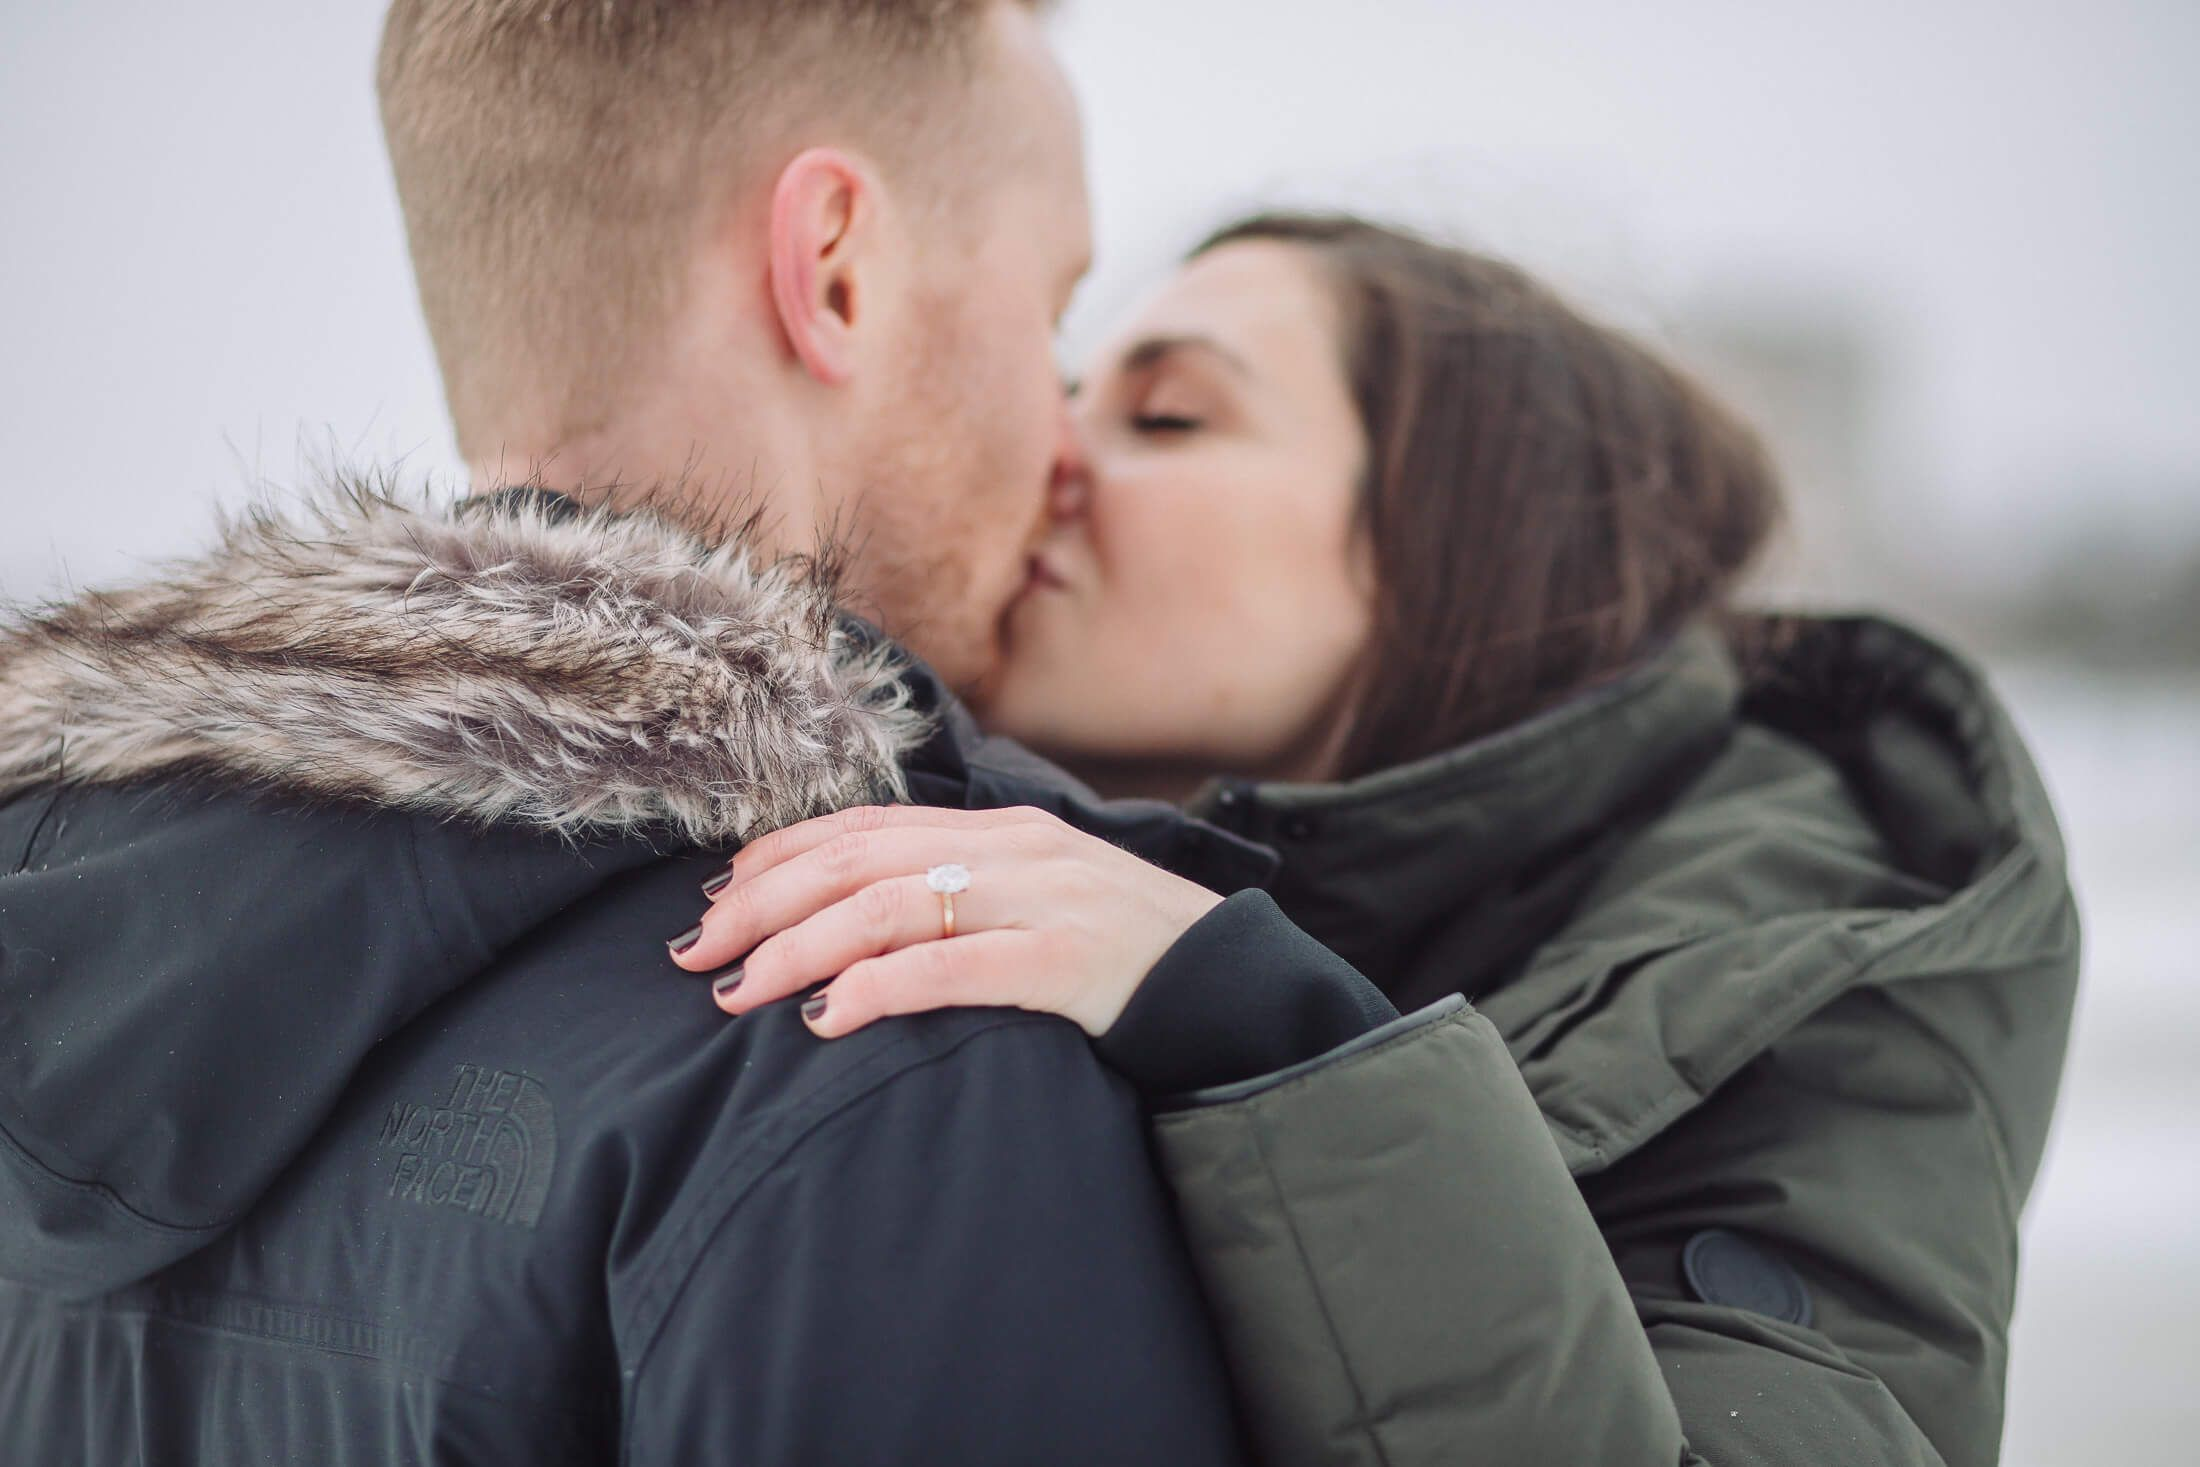 Snow winter engagement session at Cooper River Park in Collingswood, NJ.